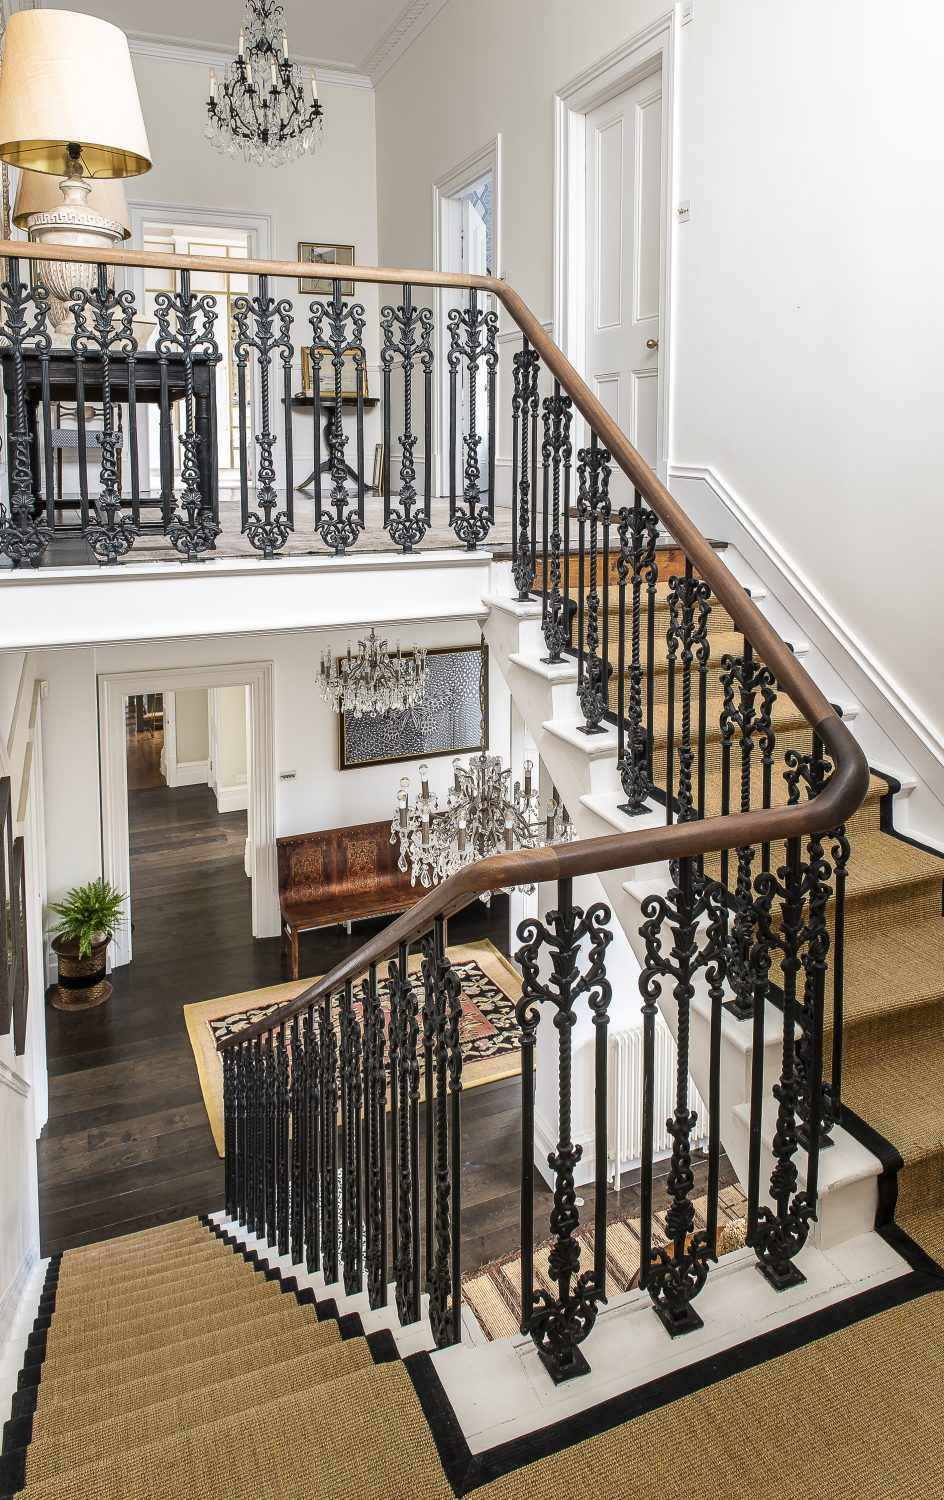 The magnificent wooden staircase has been carpeted in a natural jute